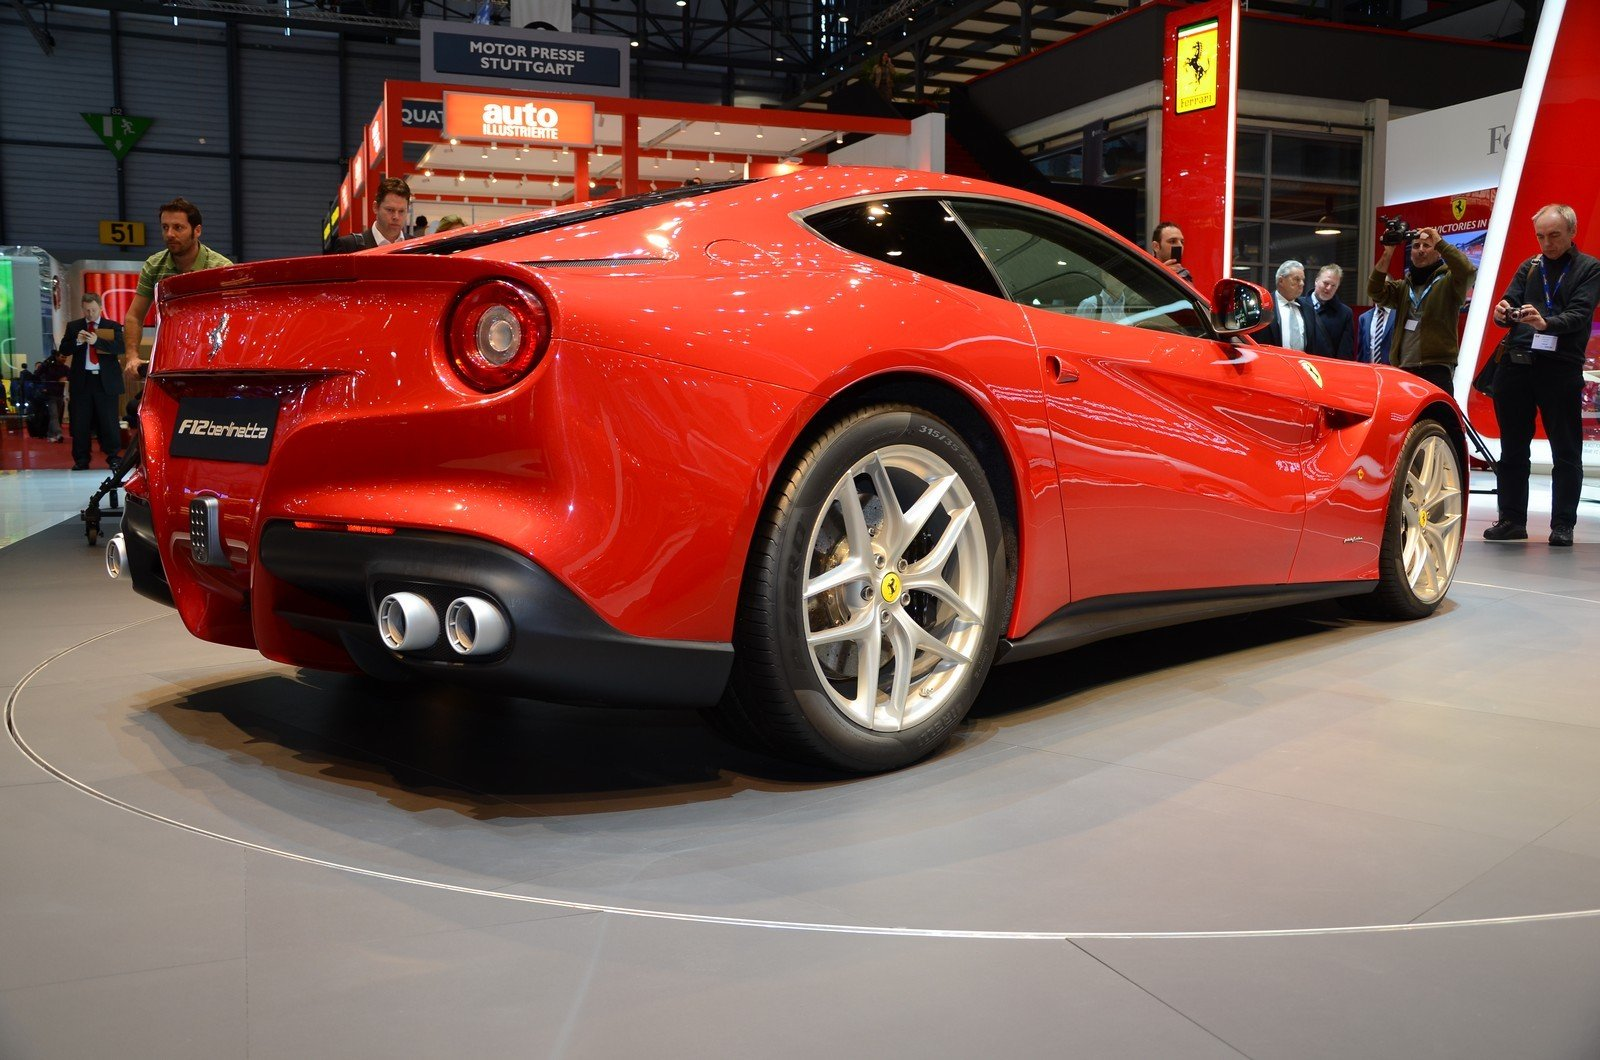 2013 ferrari f12 berlinetta picture 441825 car review top speed. Black Bedroom Furniture Sets. Home Design Ideas